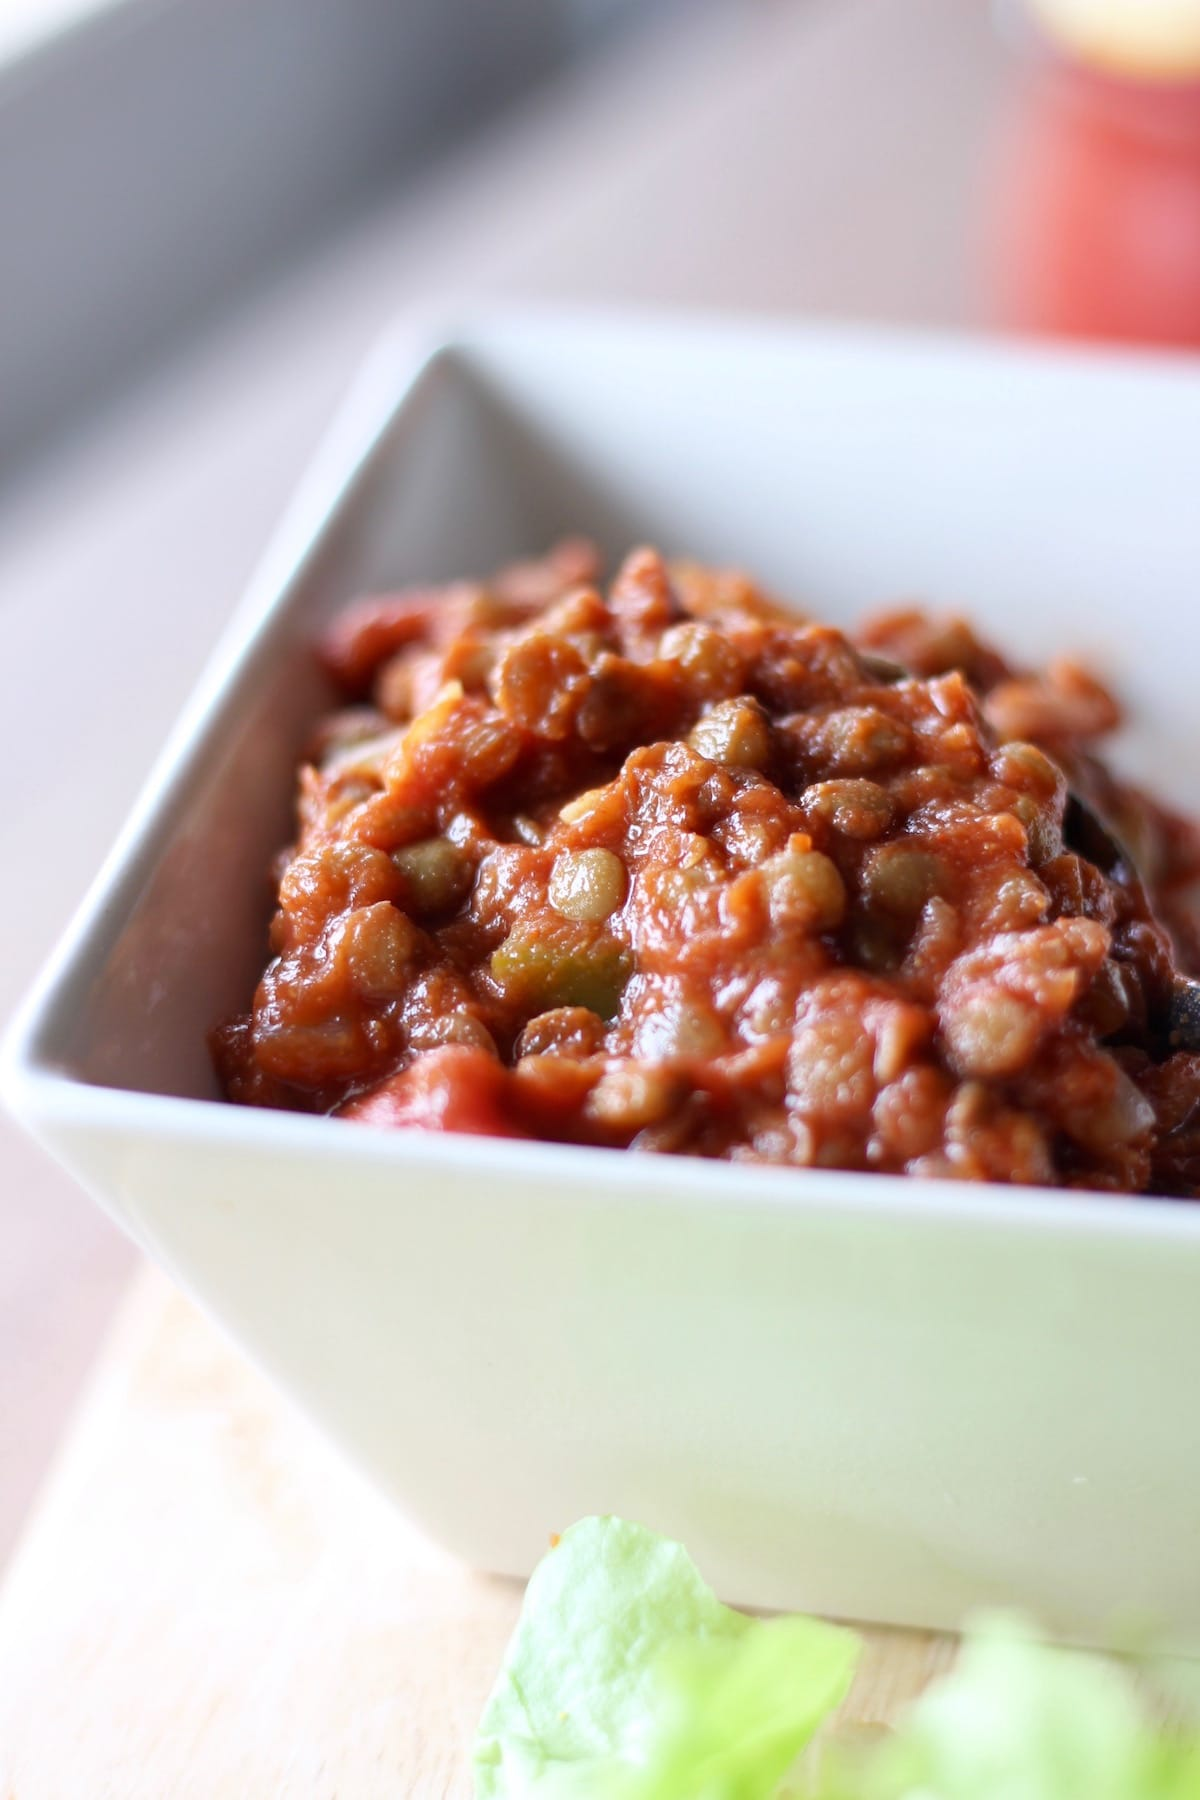 lentil sloppy joes in a bowl